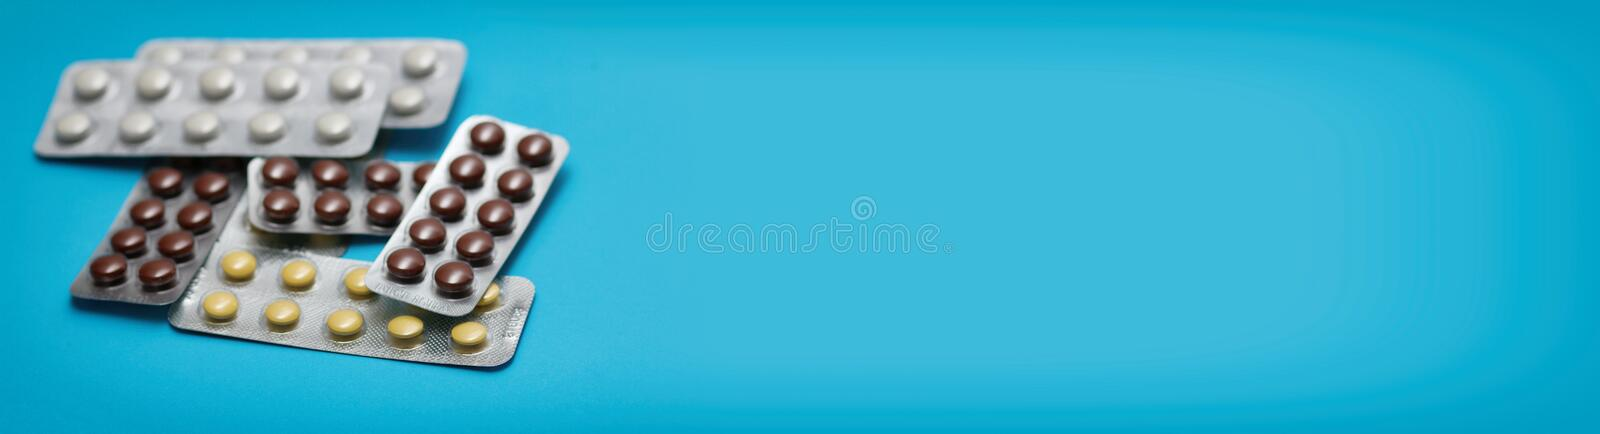 Set of pills blisters on blue solid background. Long banner photo. Header format. Place for your information text. Medical concept. Online shop of supplements royalty free stock image